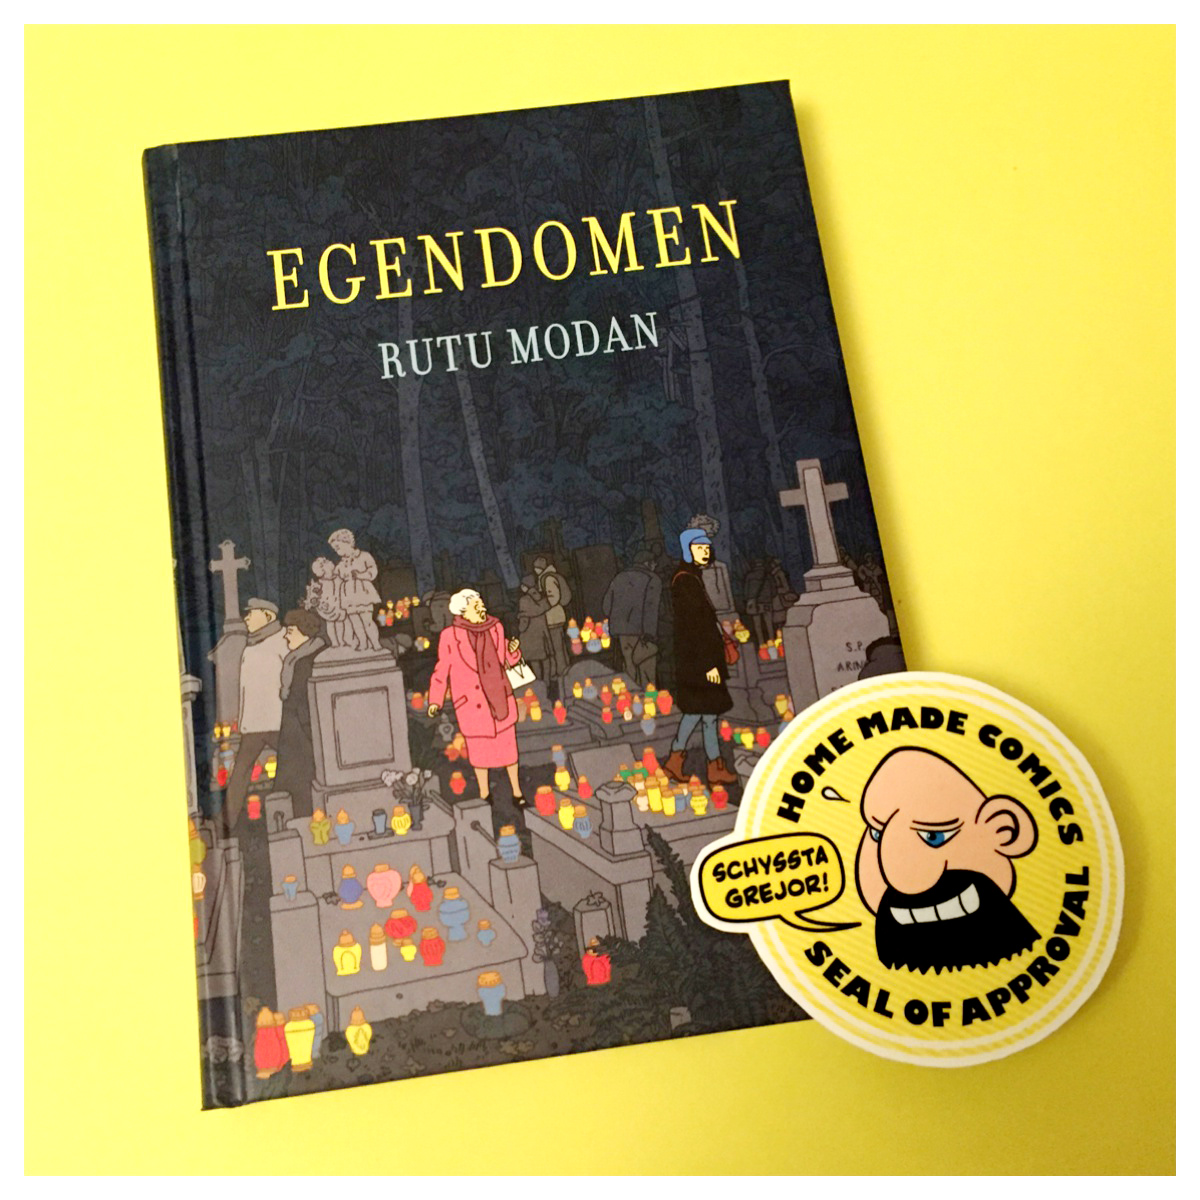 Home Made Comics Seal of Approval #138. Egendomen av Rutu Modan utgiven av Placebo Press 2016.